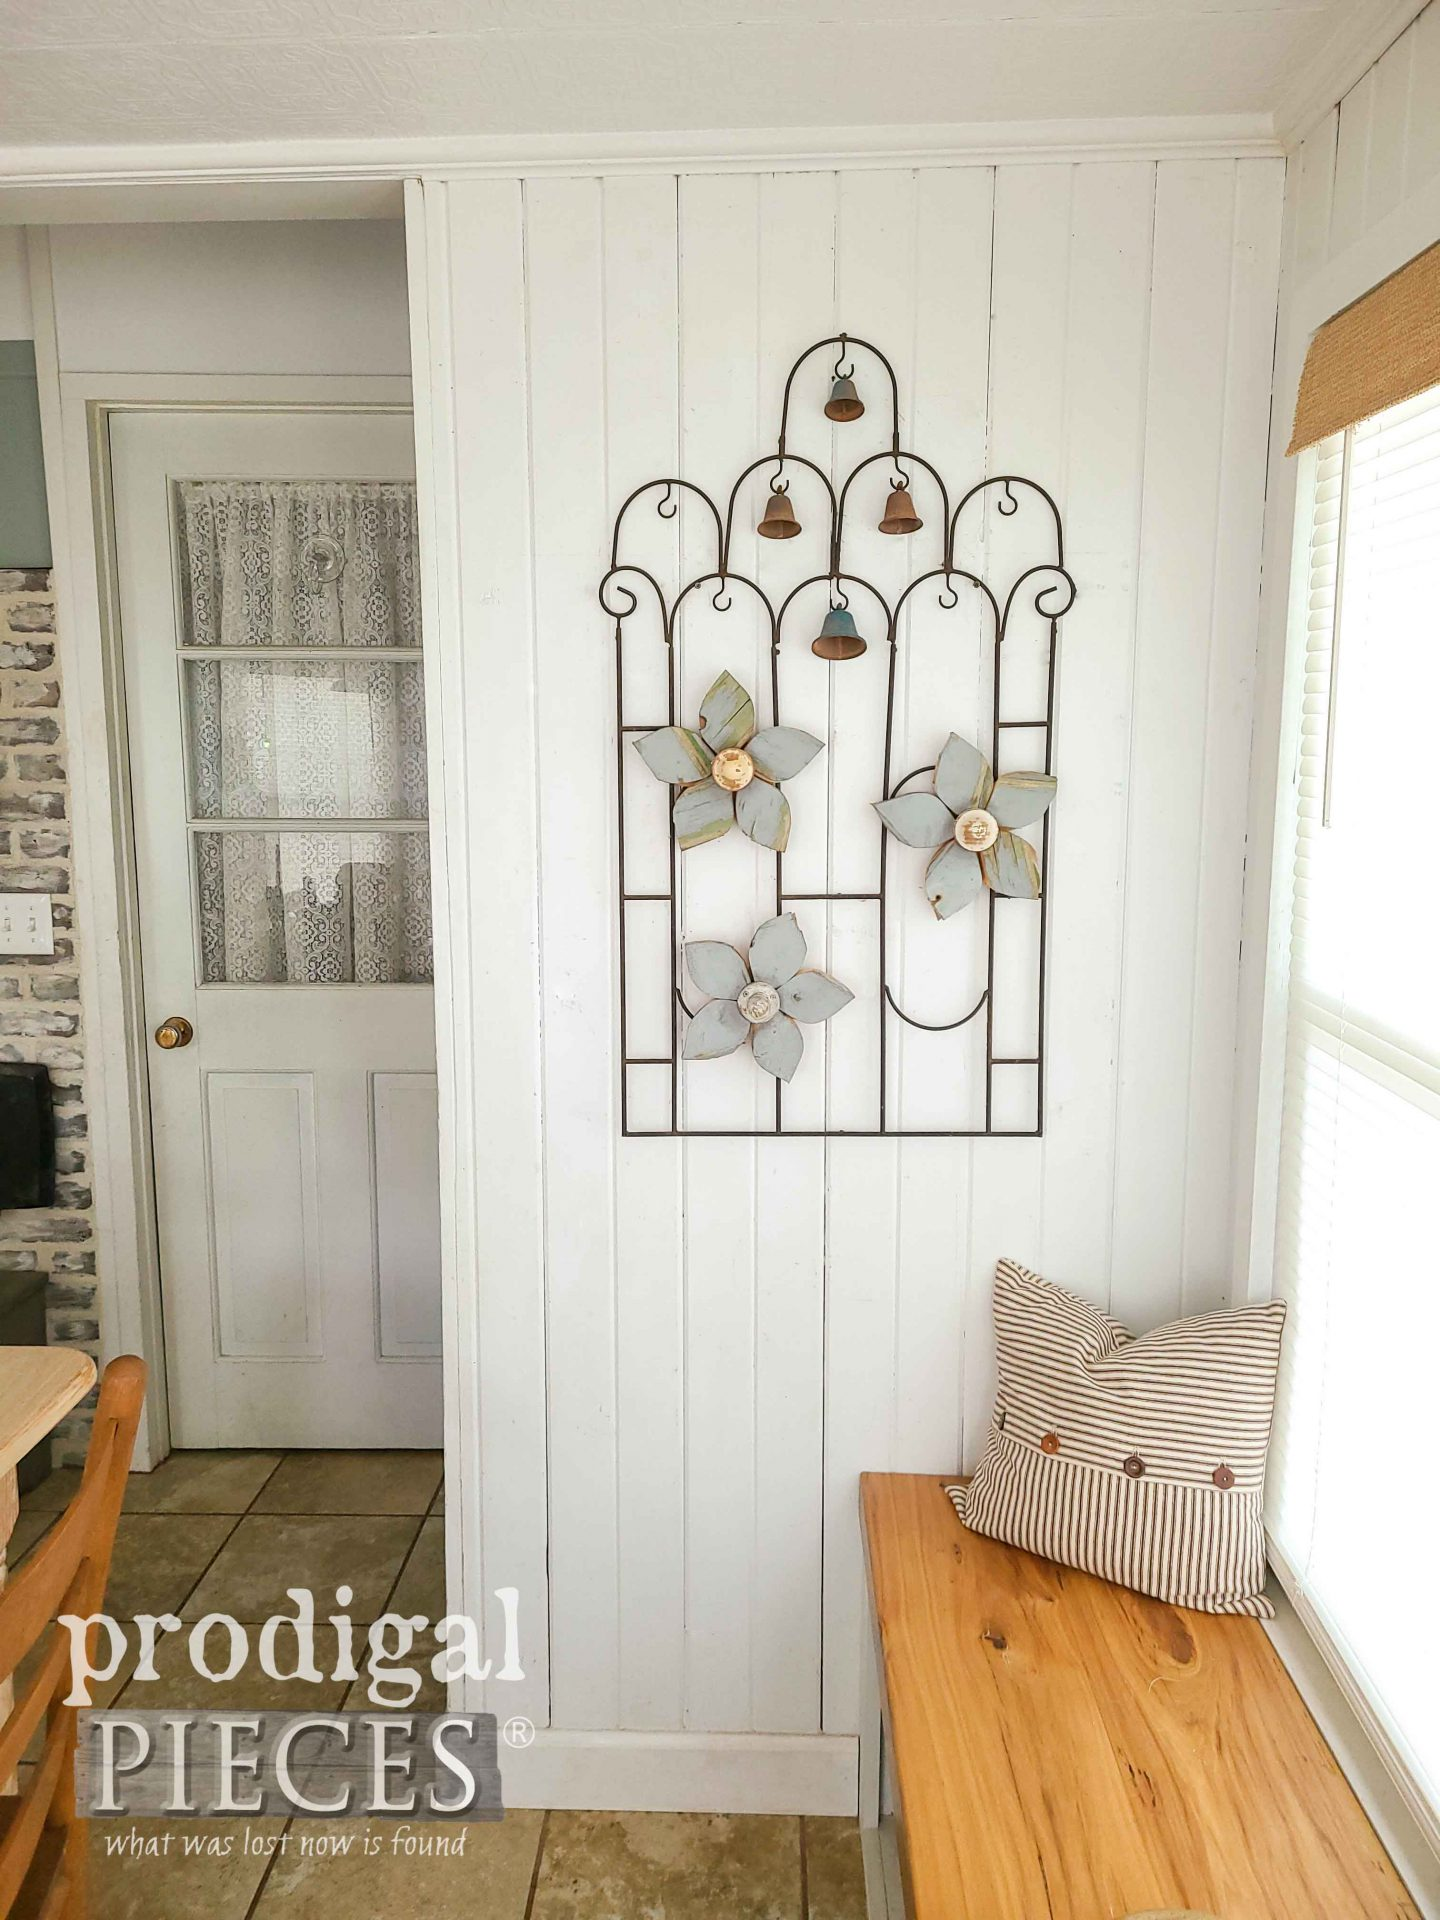 DIY Salvaged Garden Art for Home Decor by Larissa of Prodigal Pieces | prodigalpieces.com #prodigalpieces #diy #garden #home #homedecor #farmhouse